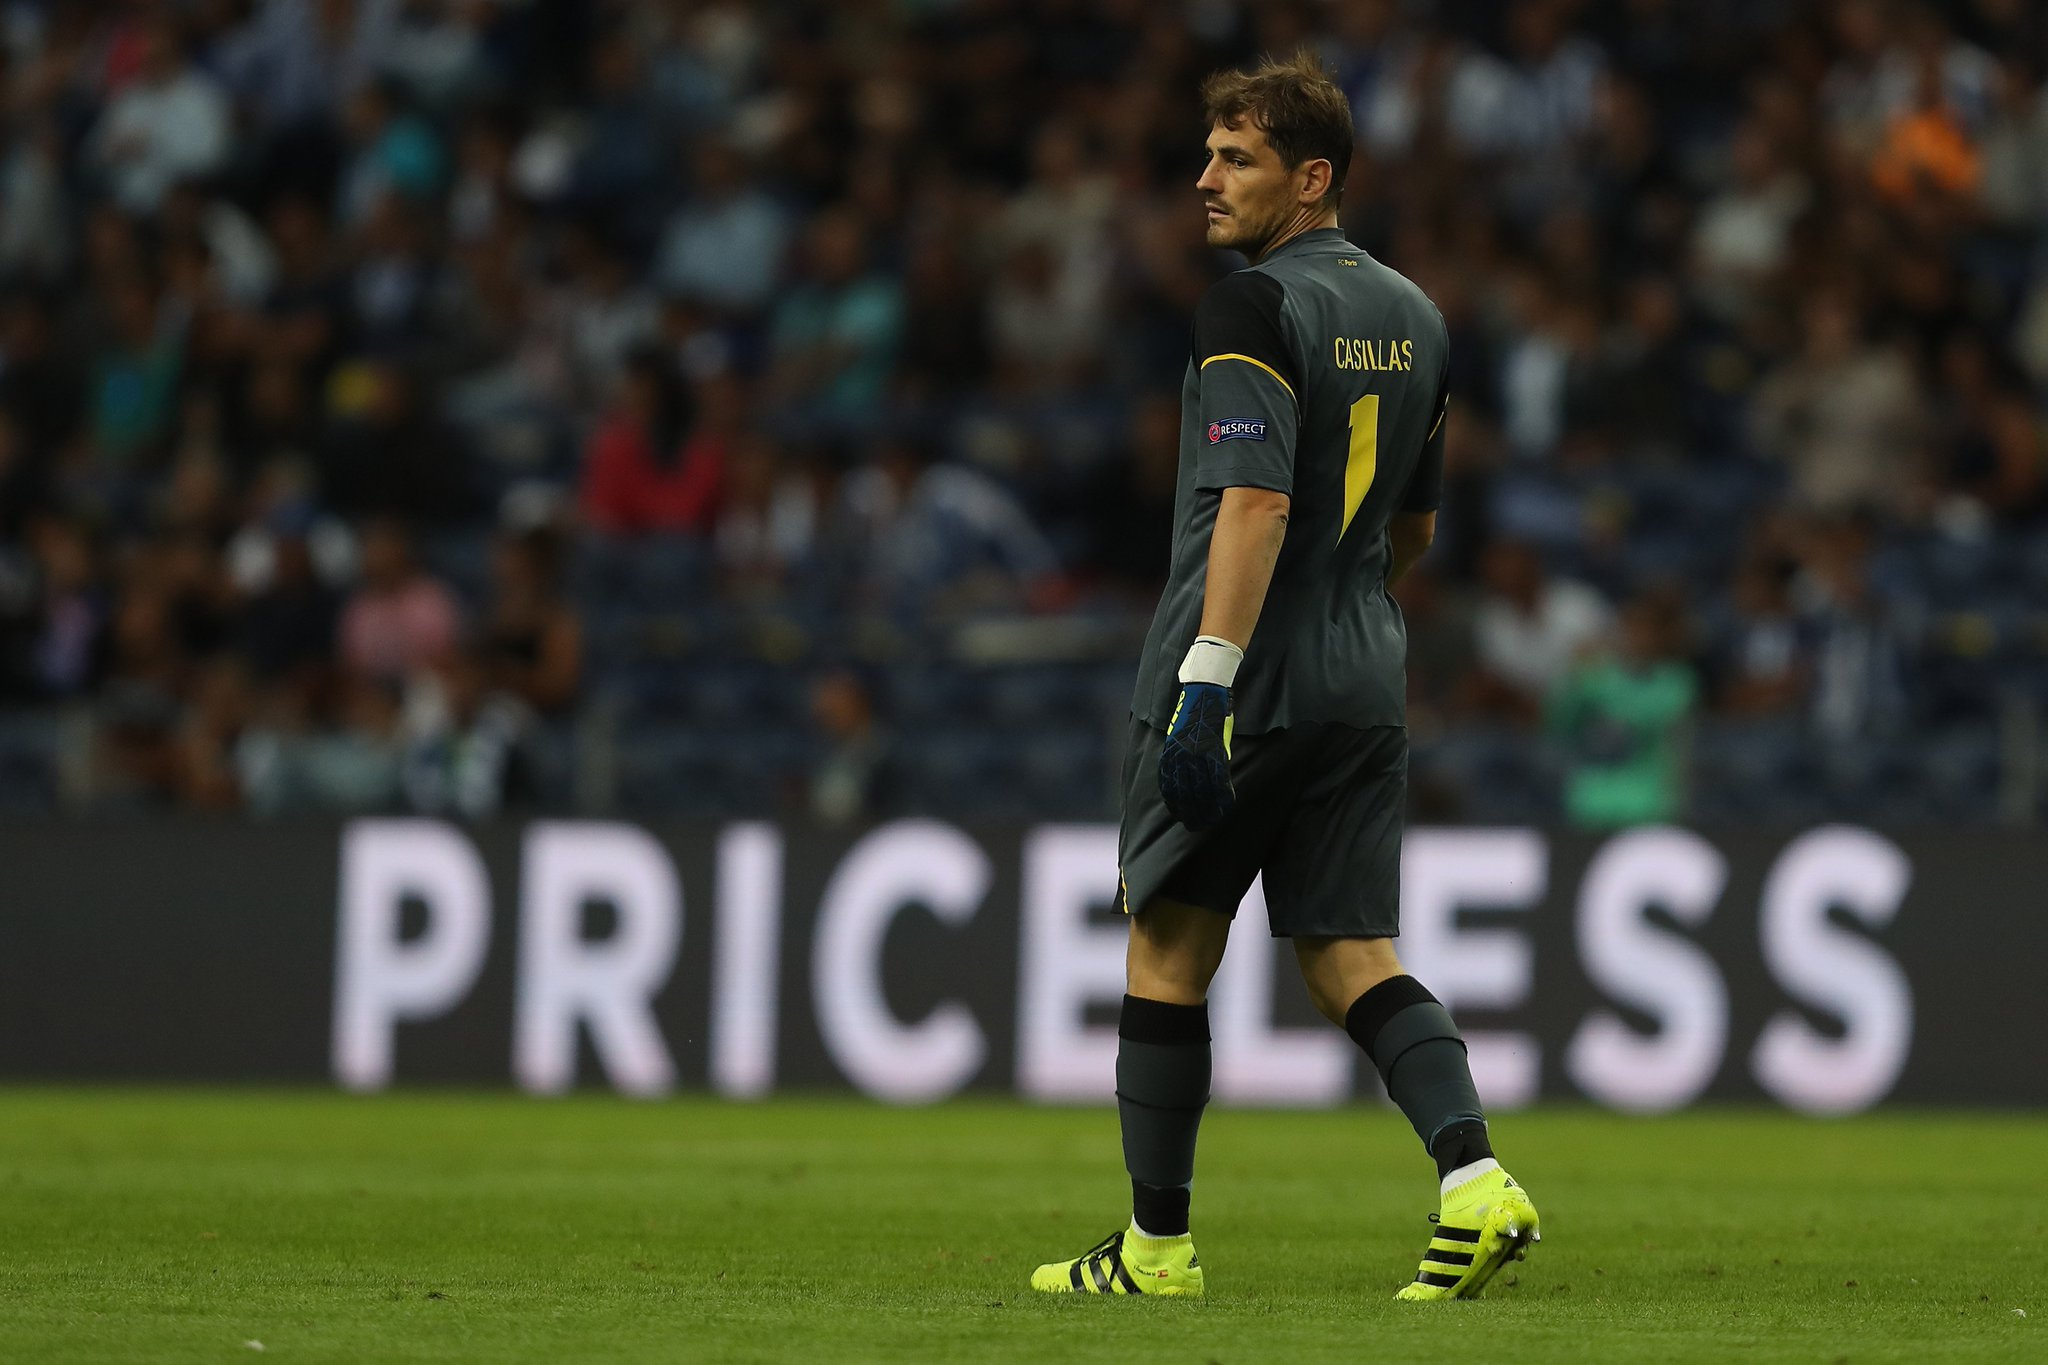 Three-time winner Iker Casillas set for his 20th season in the #UCL ������ https://t.co/xZ8WmM8jLa